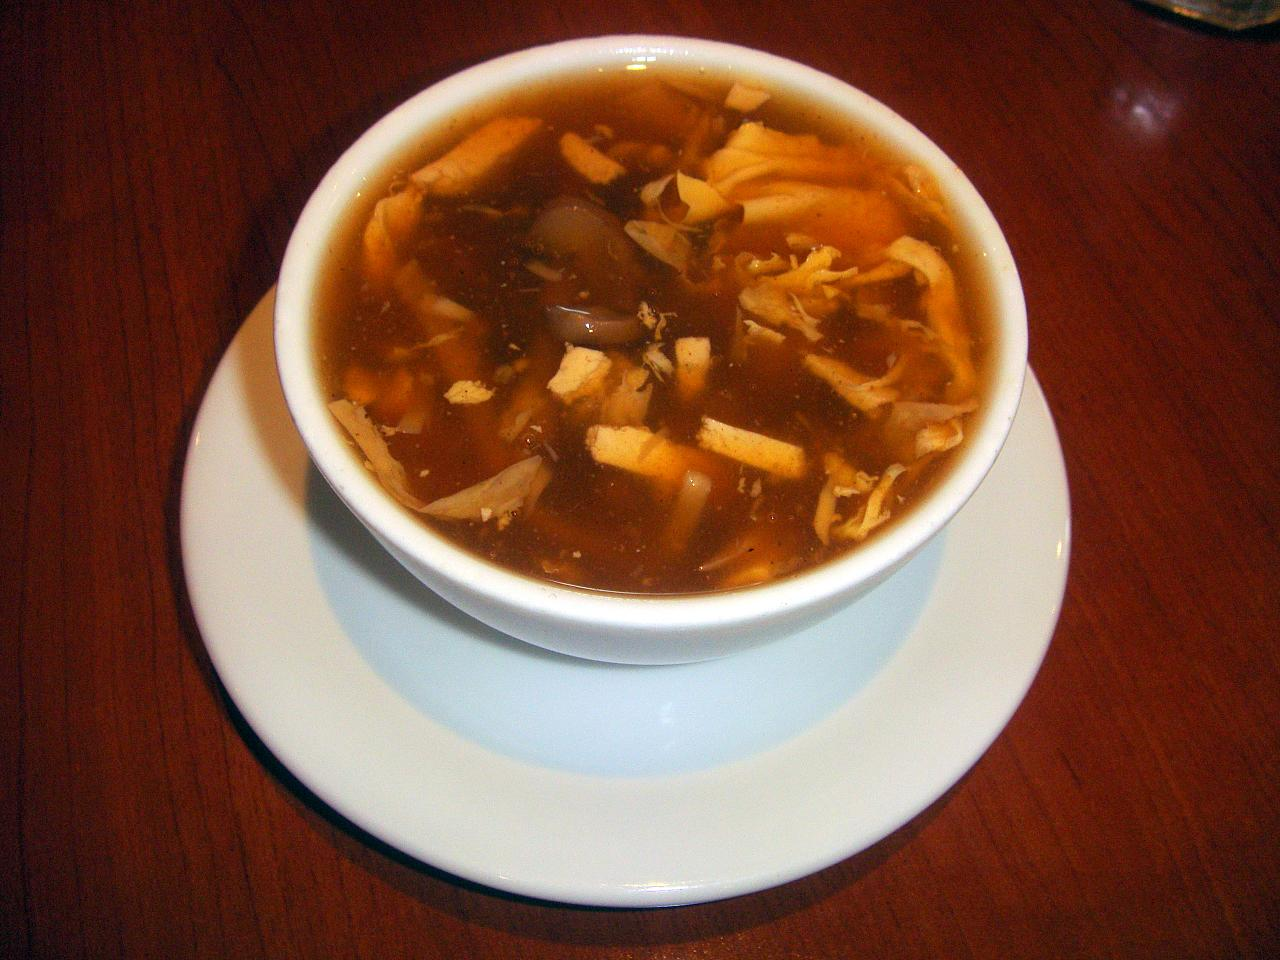 FOOD: Hot and Sour Soup